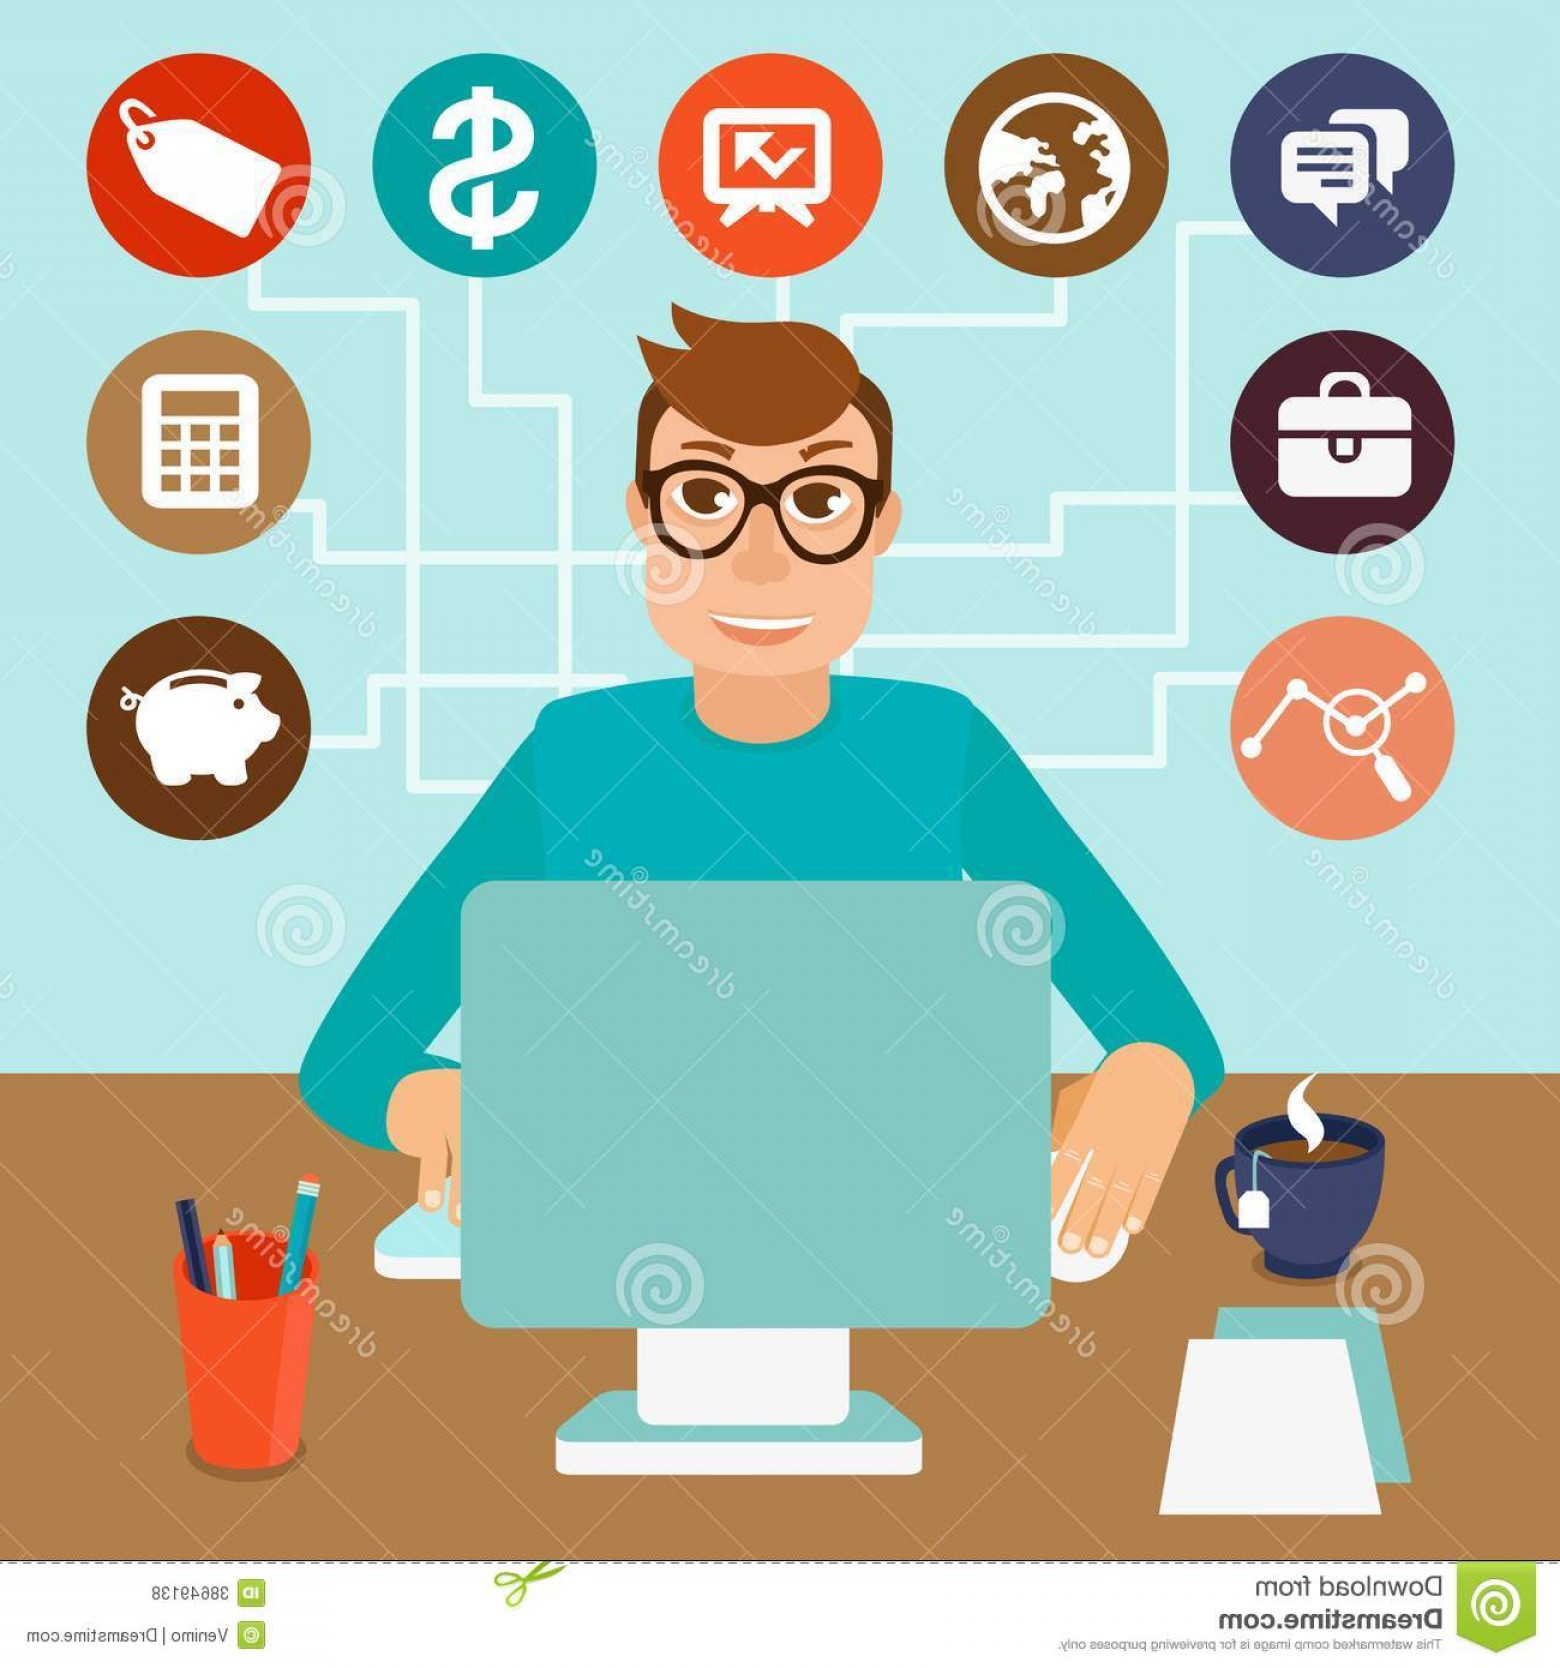 Computer Vector Icon Flat: Royalty Free Stock Photos Vector Self Employed Man Flat Style Sitting Computer Working Freelance Project Infographic Icons Signs Image